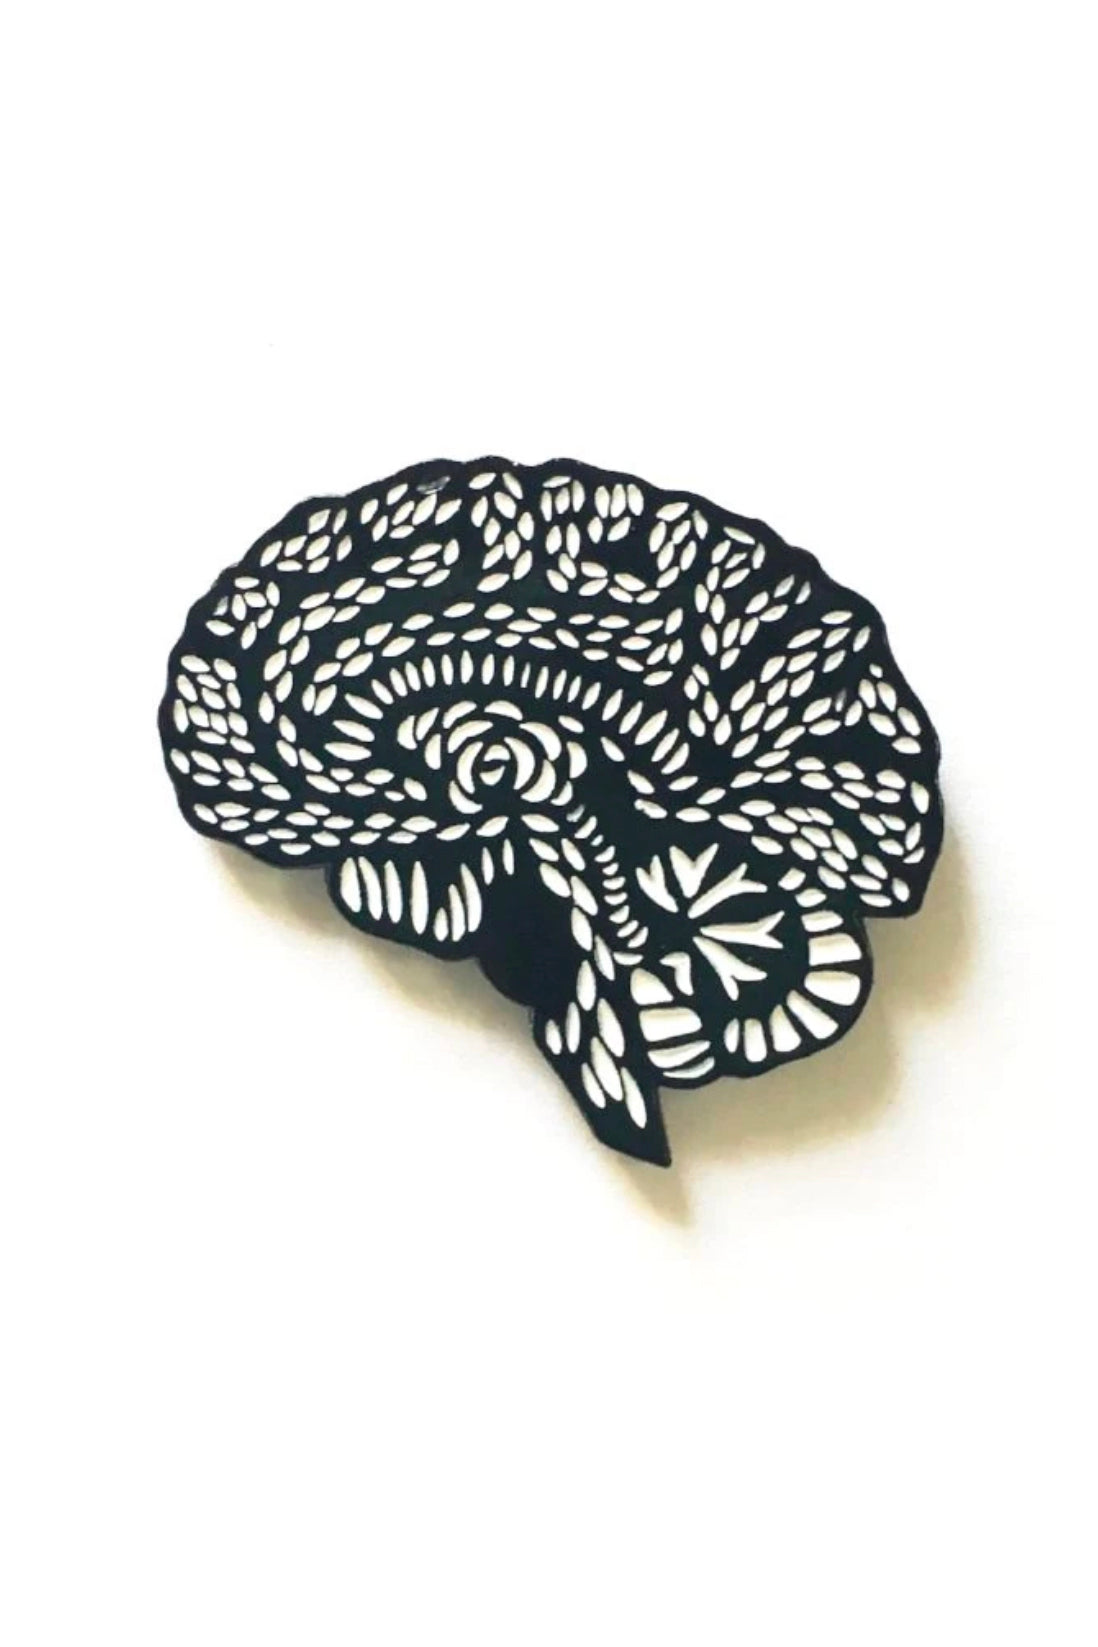 Light + Paper Enamel Pin -Brain